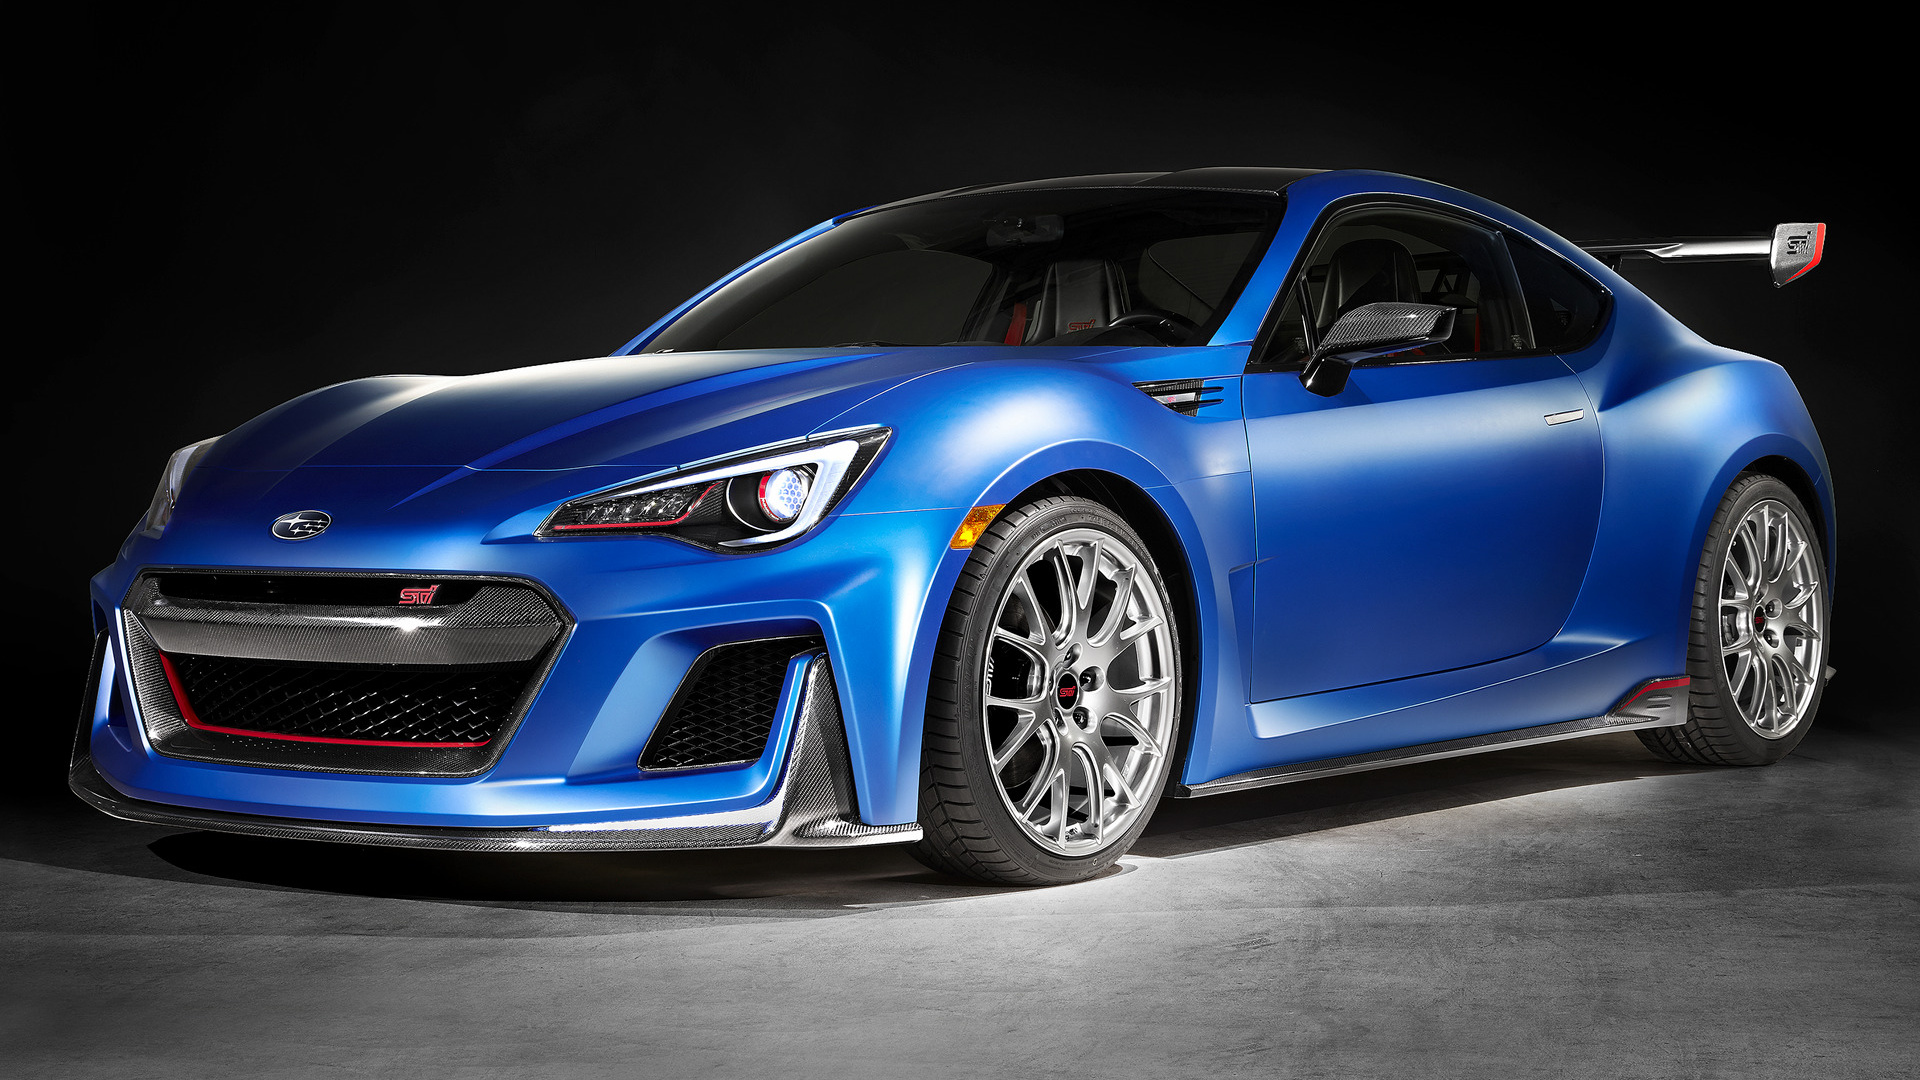 Subaru BRZ STI Performance Concept (2015) Wallpapers and HD Images ...